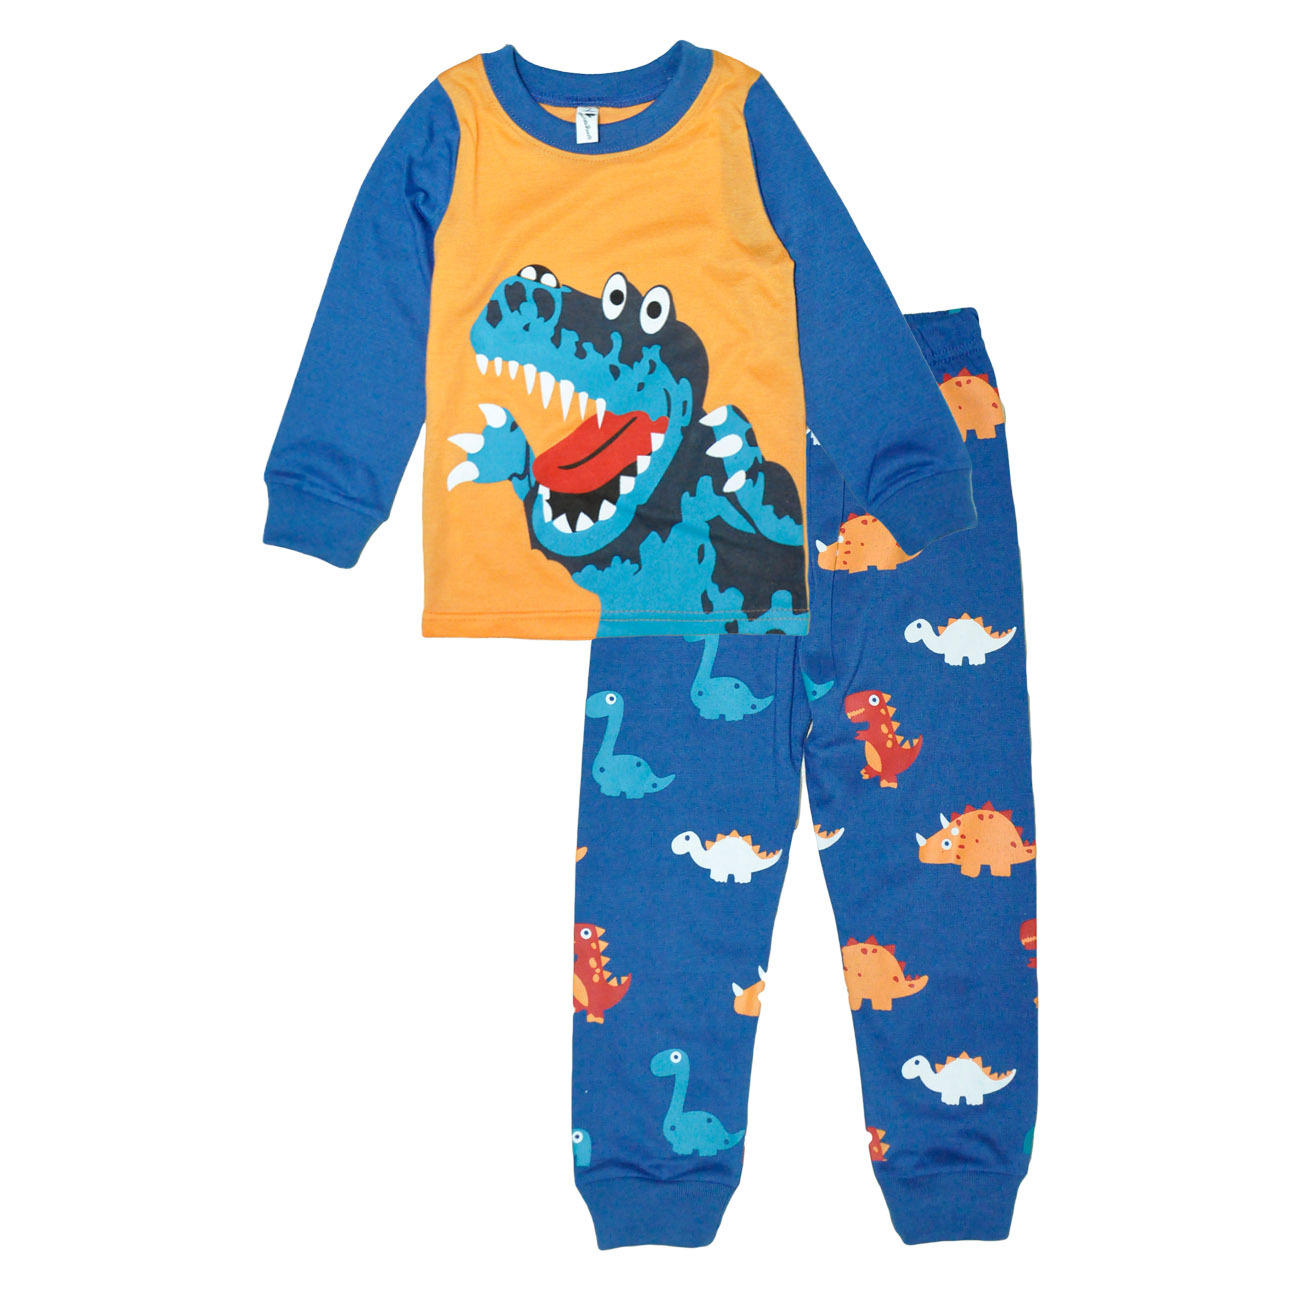 Kids Pajamas Sets Boys Dinosaur Pattern Night Suit Children Cartoon Sleepwear Children Pyjamas Kids 100% Cotton Nightwear 2-7Y дикинсон э стихи из комода